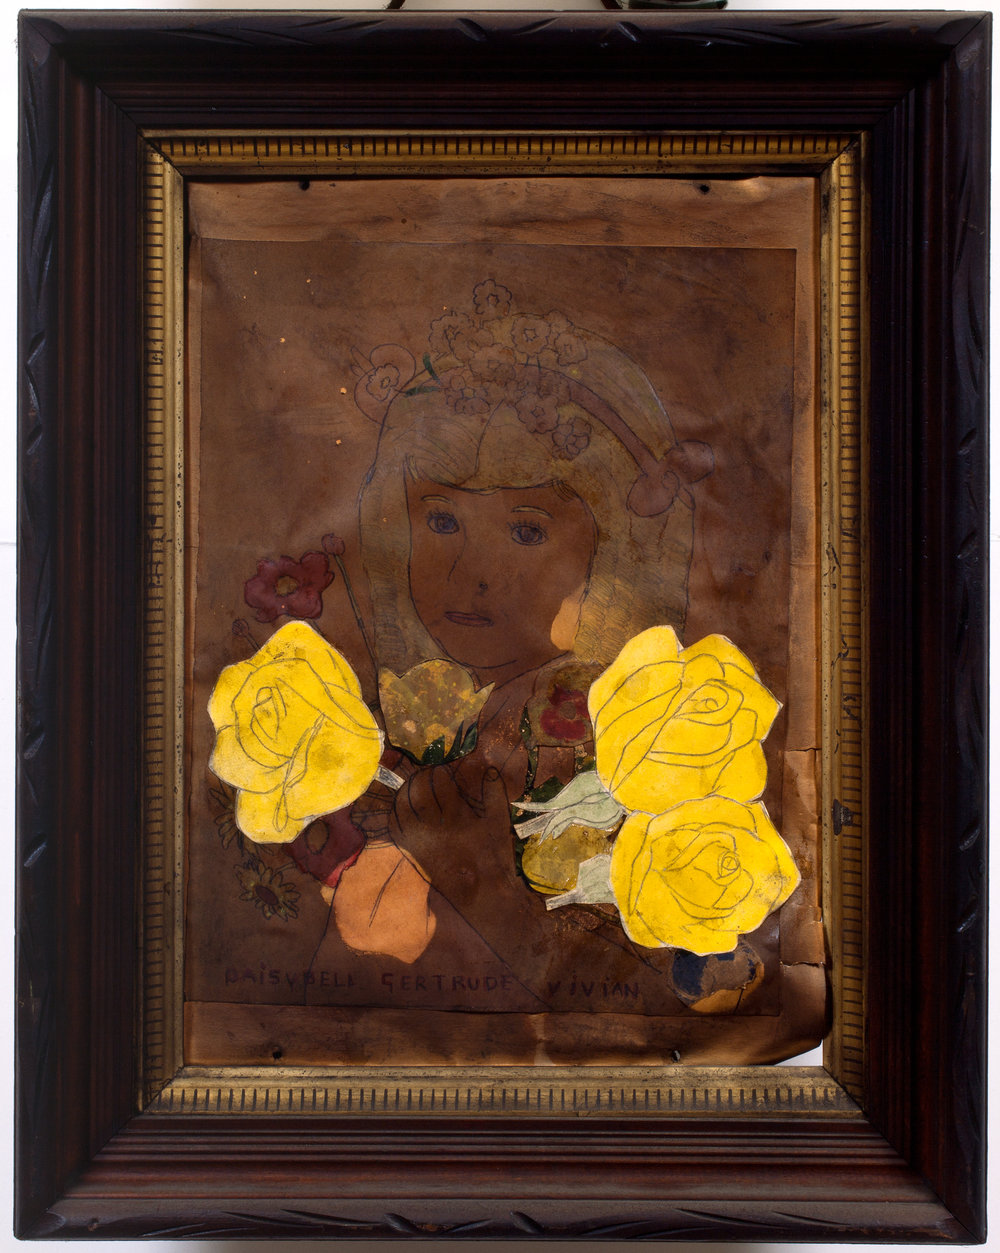 Henry Darger (American, 1892-1973). Joyce Vivian, ca. 1940s. Mixed media on paper, 18 ½ x 14 ½ in. (framed). Photo by John Faier. Collection of Robert A. Roth